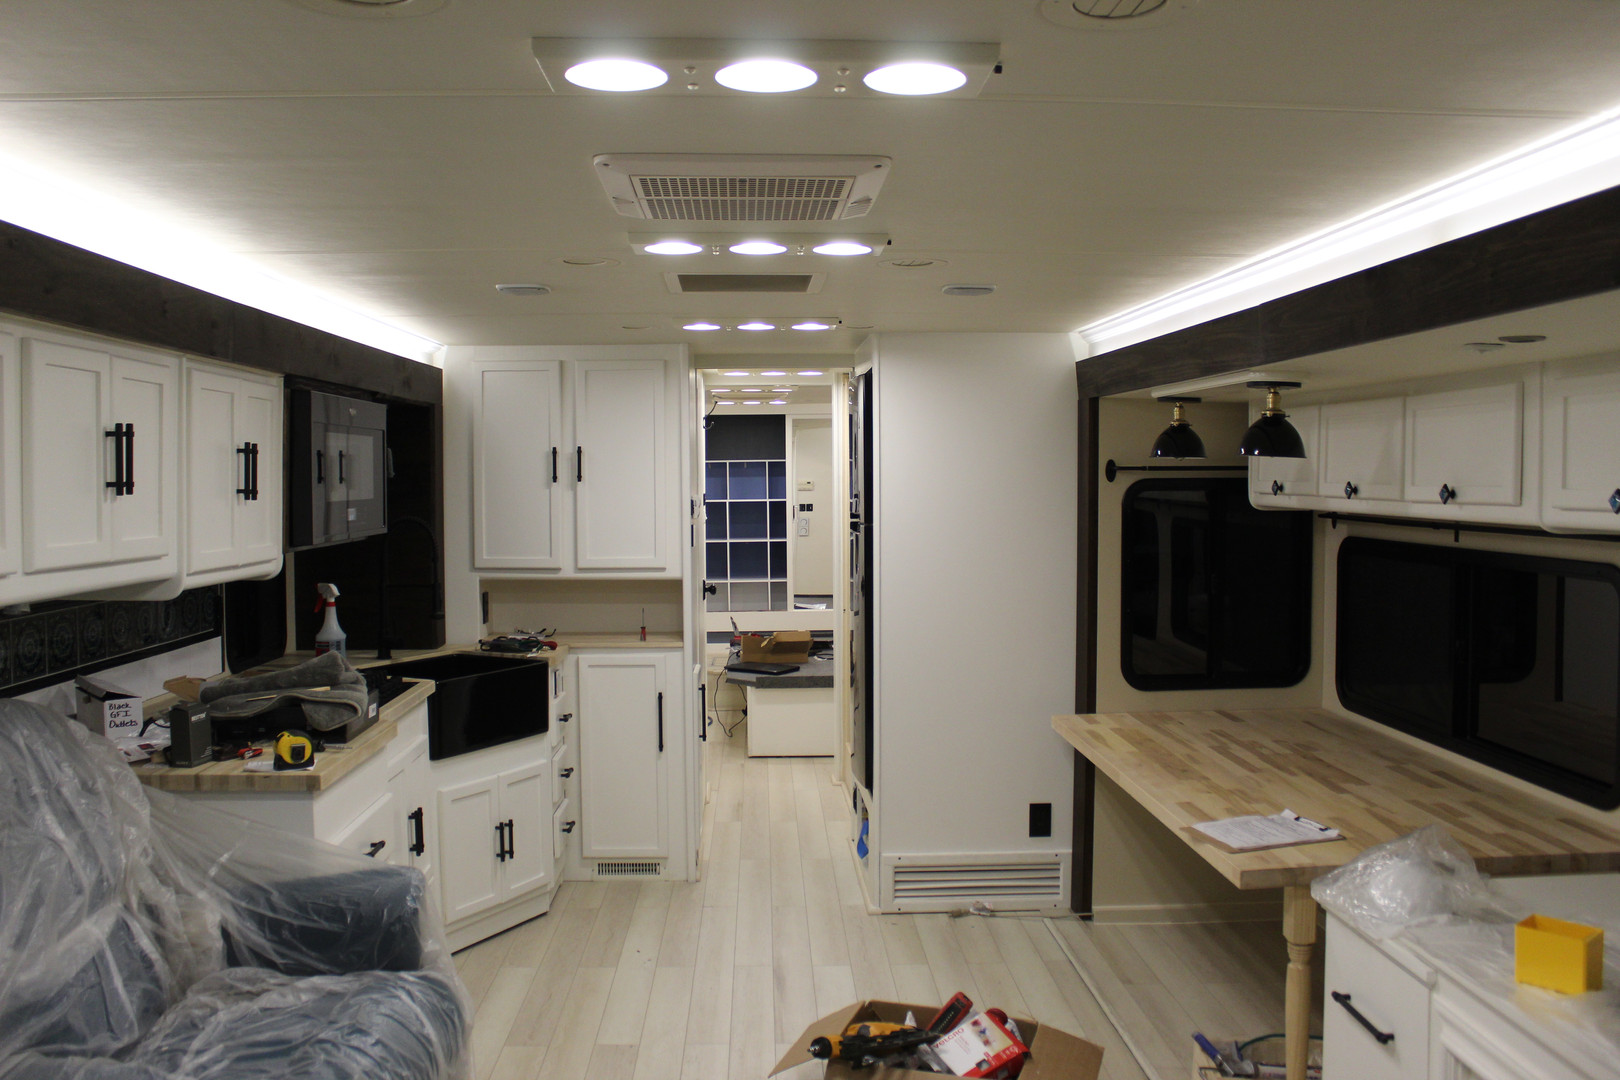 After - Full Living Space with Custom Overhead LED Lighting